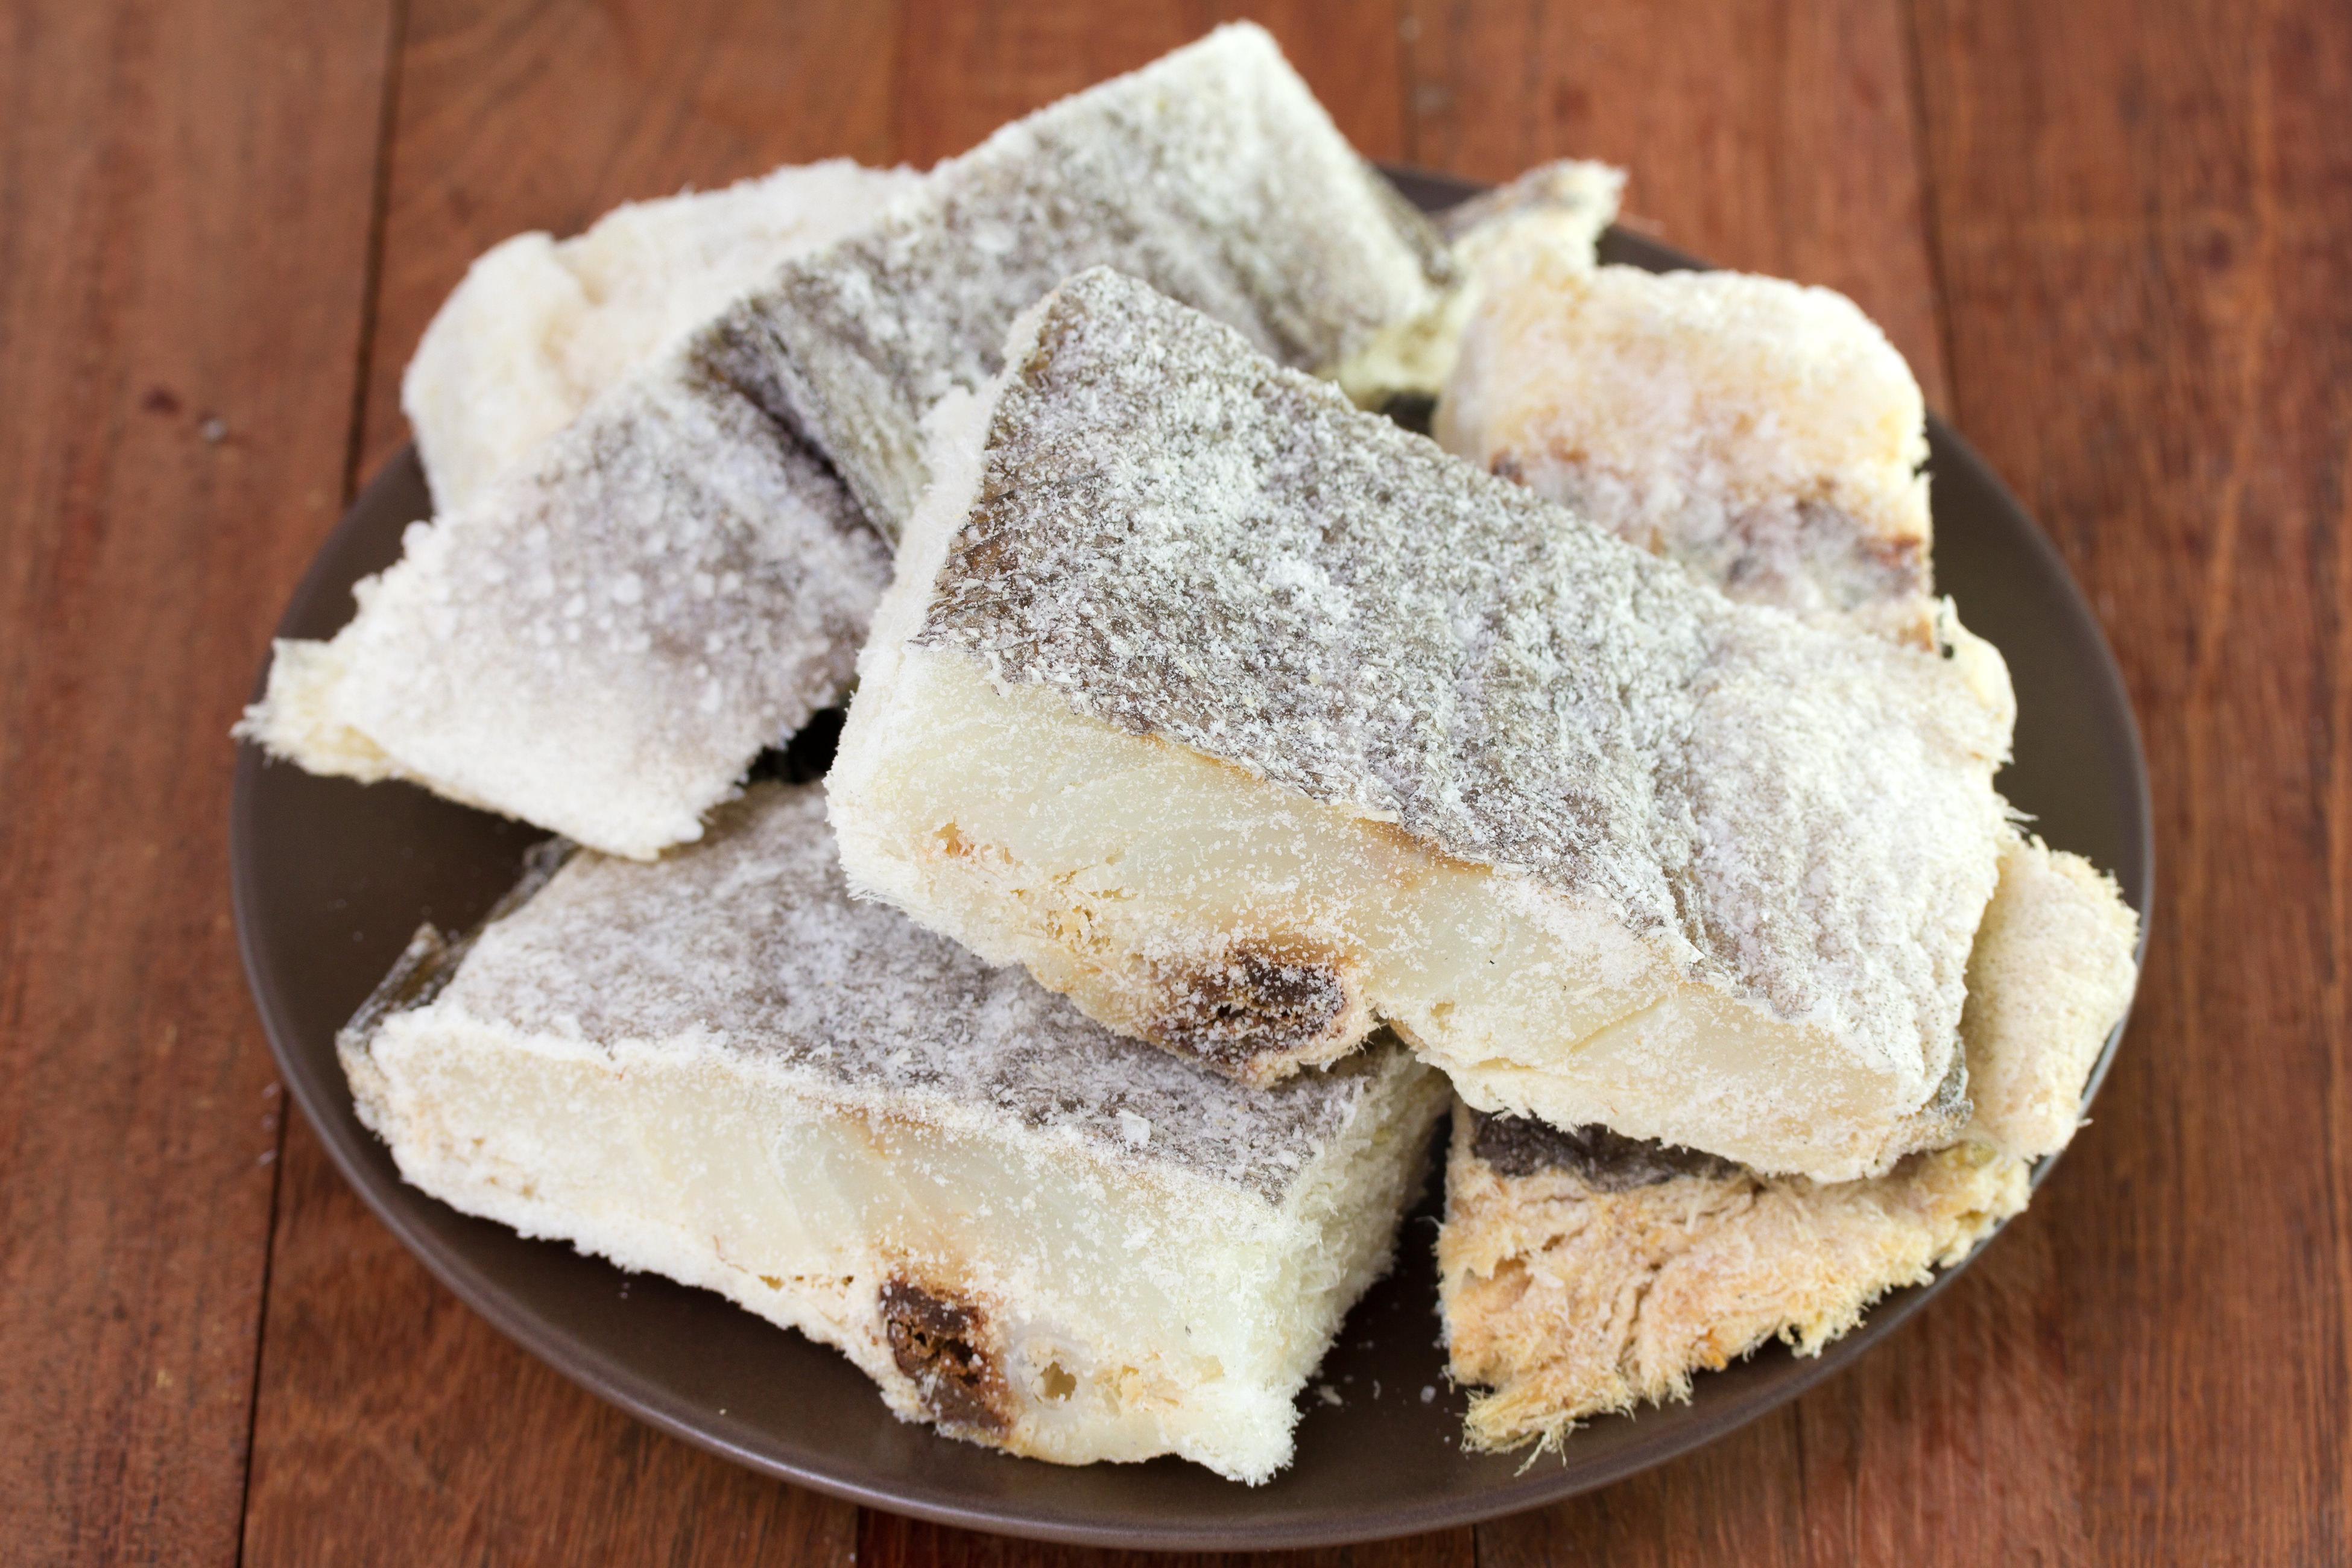 Salted Fish is a Traditional Greek Food